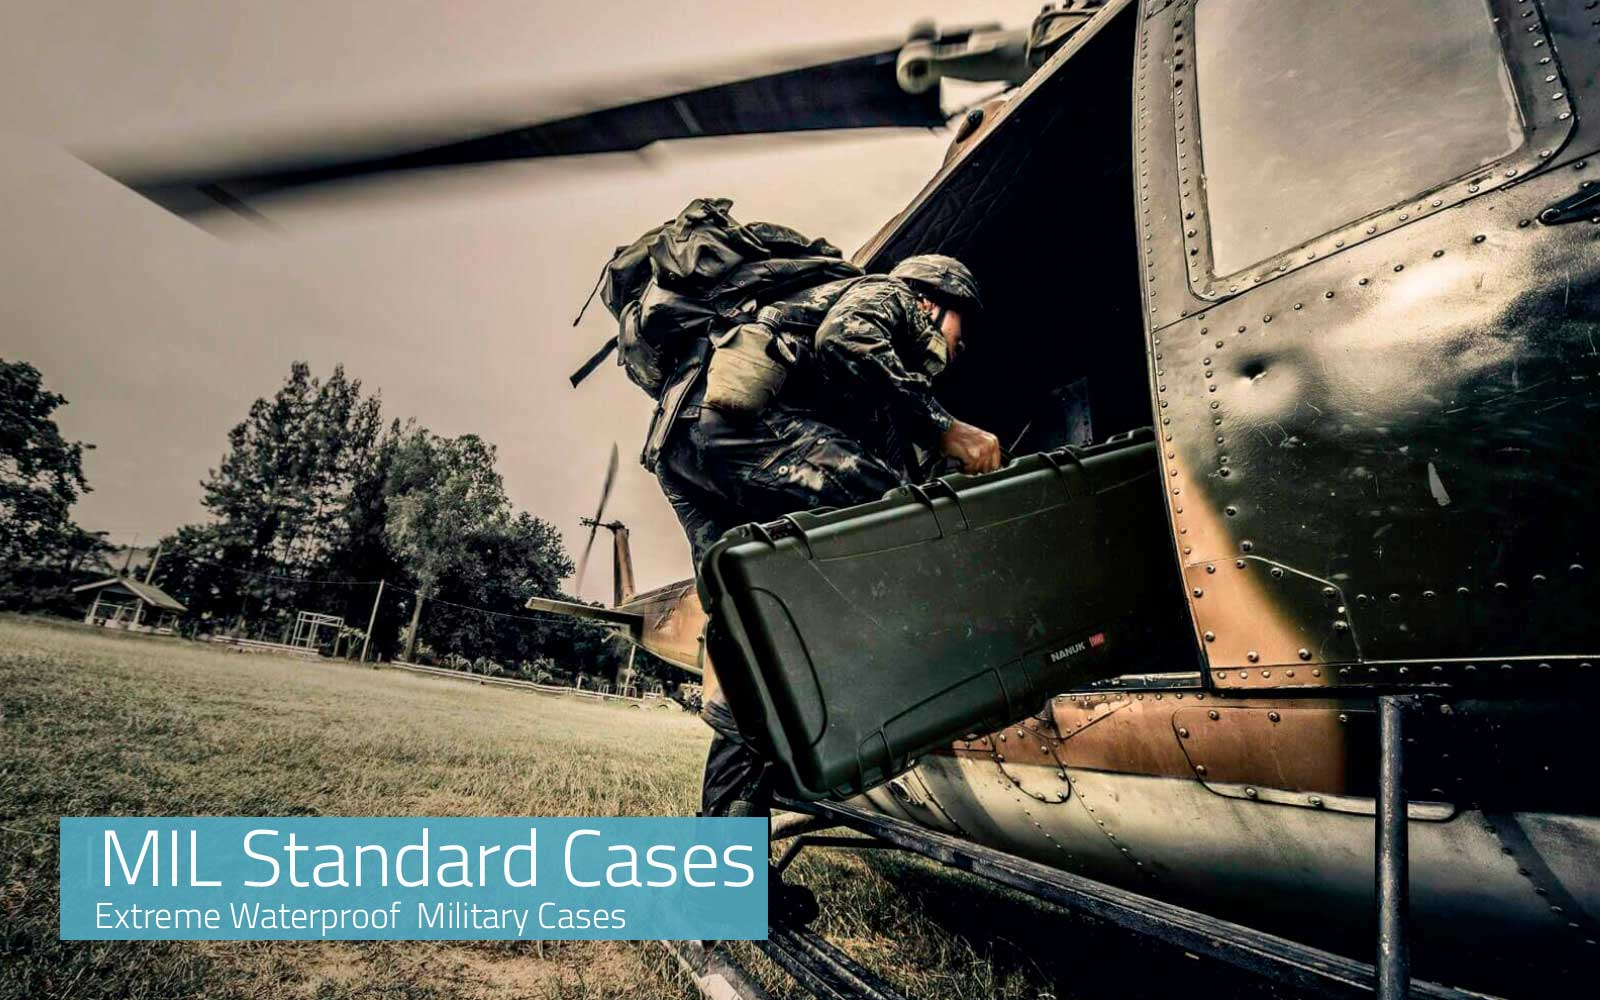 Military Waterproof Cases